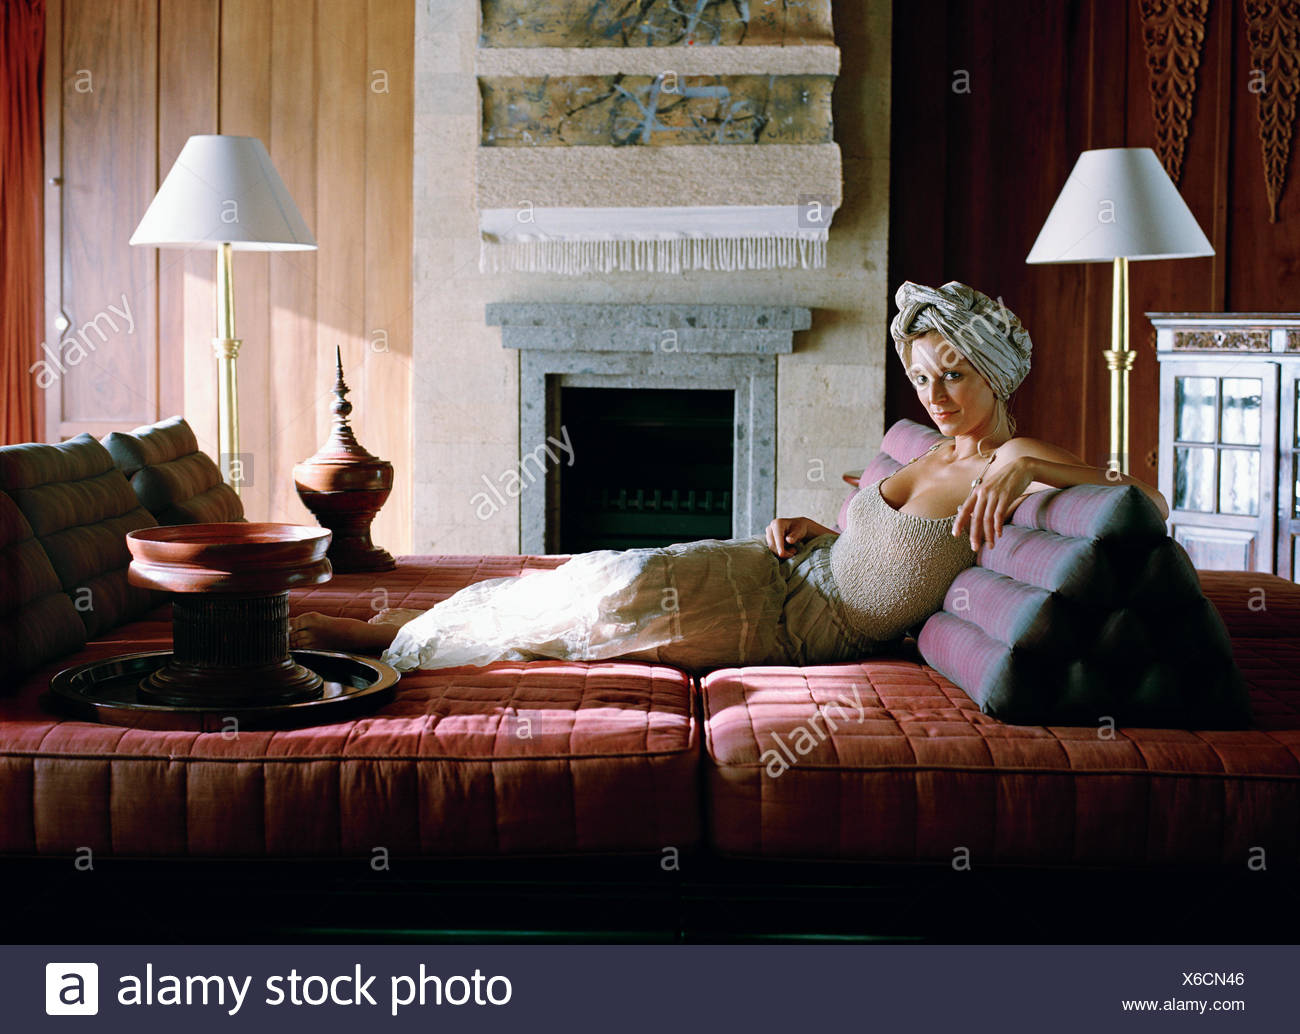 A Scandinavian woman on a couch. - Stock Image